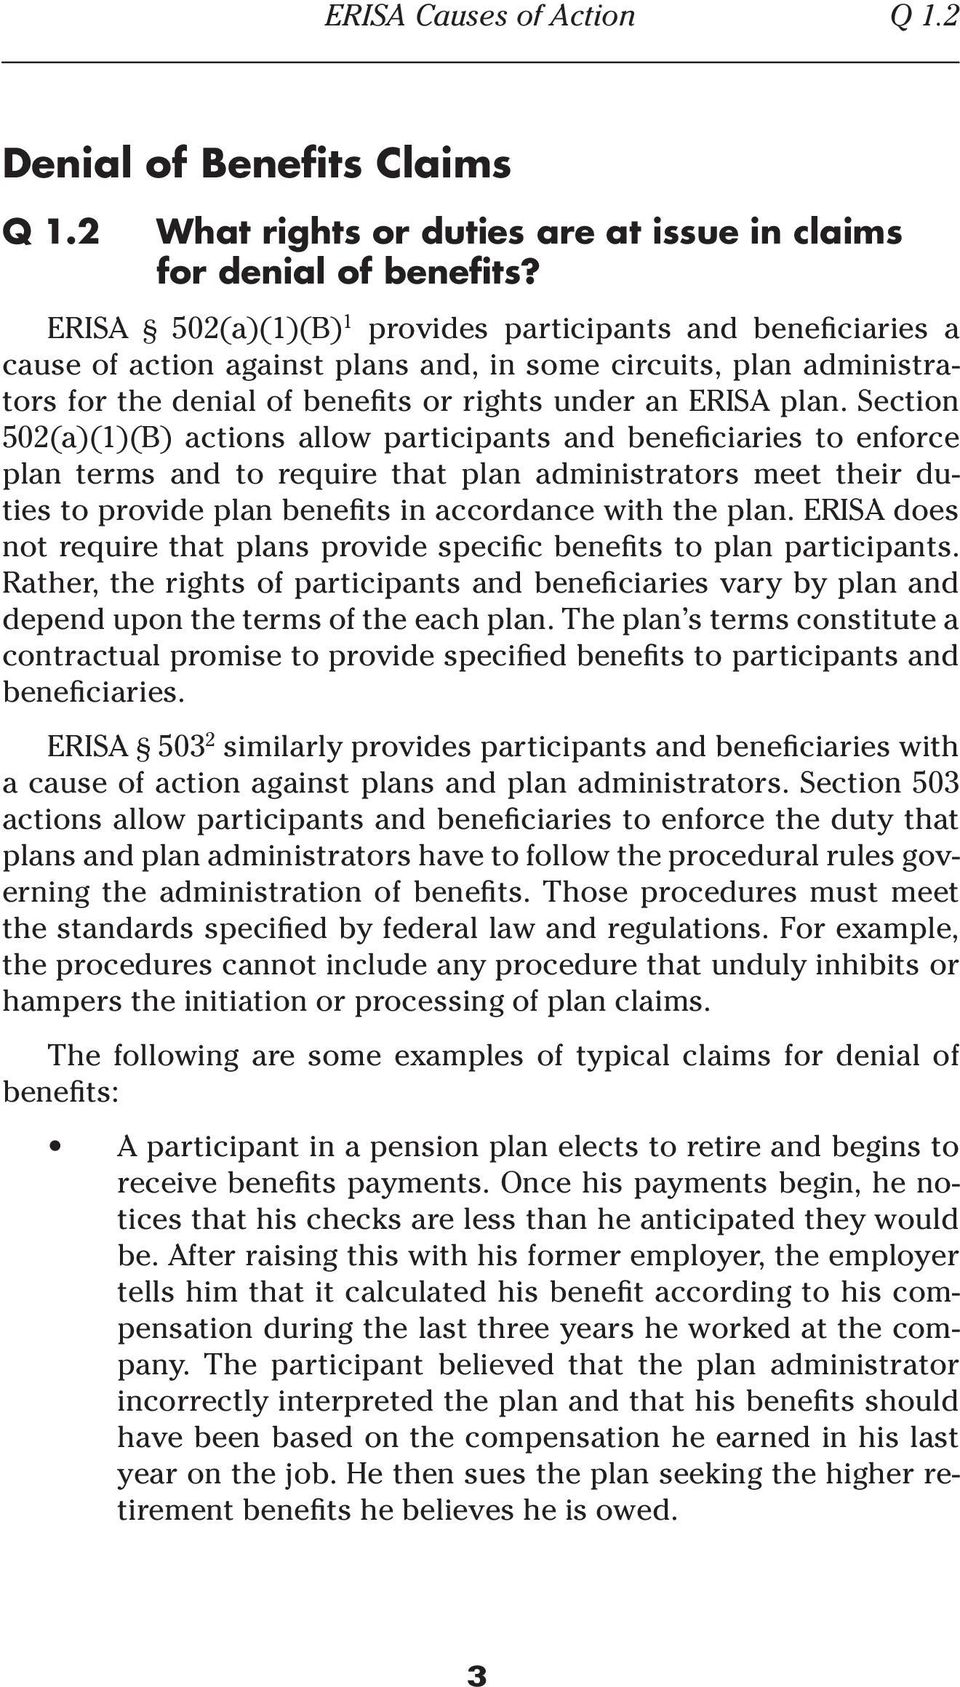 Section 502(a)(1)(B) actions allow participants and beneficiaries to enforce plan terms and to require that plan administrators meet their duties to provide plan benefits in accordance with the plan.